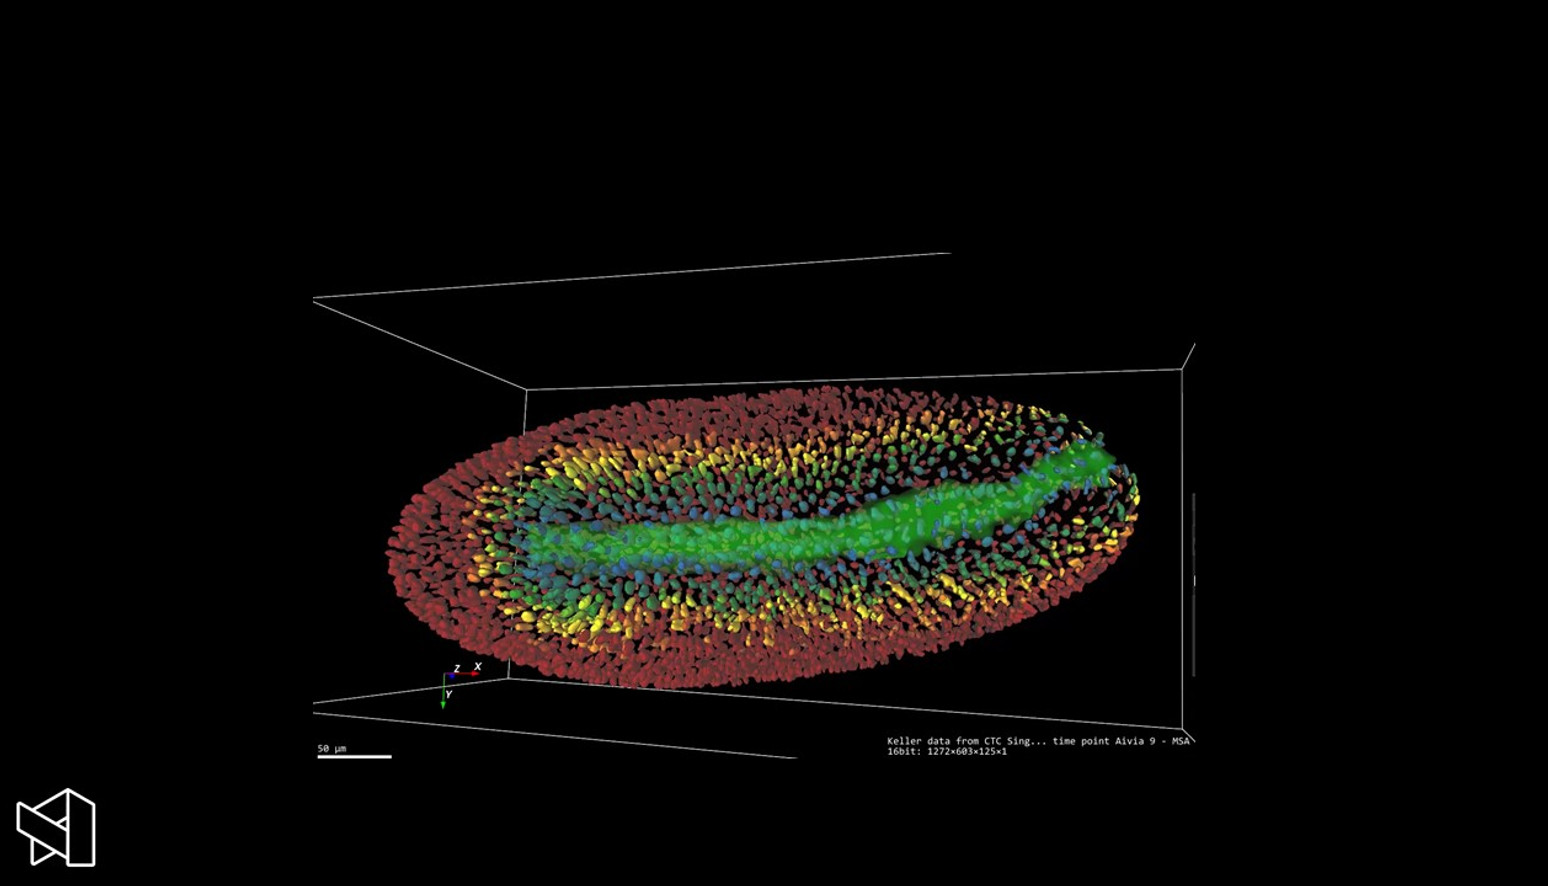 Visualize the distance of cells from the mid-region